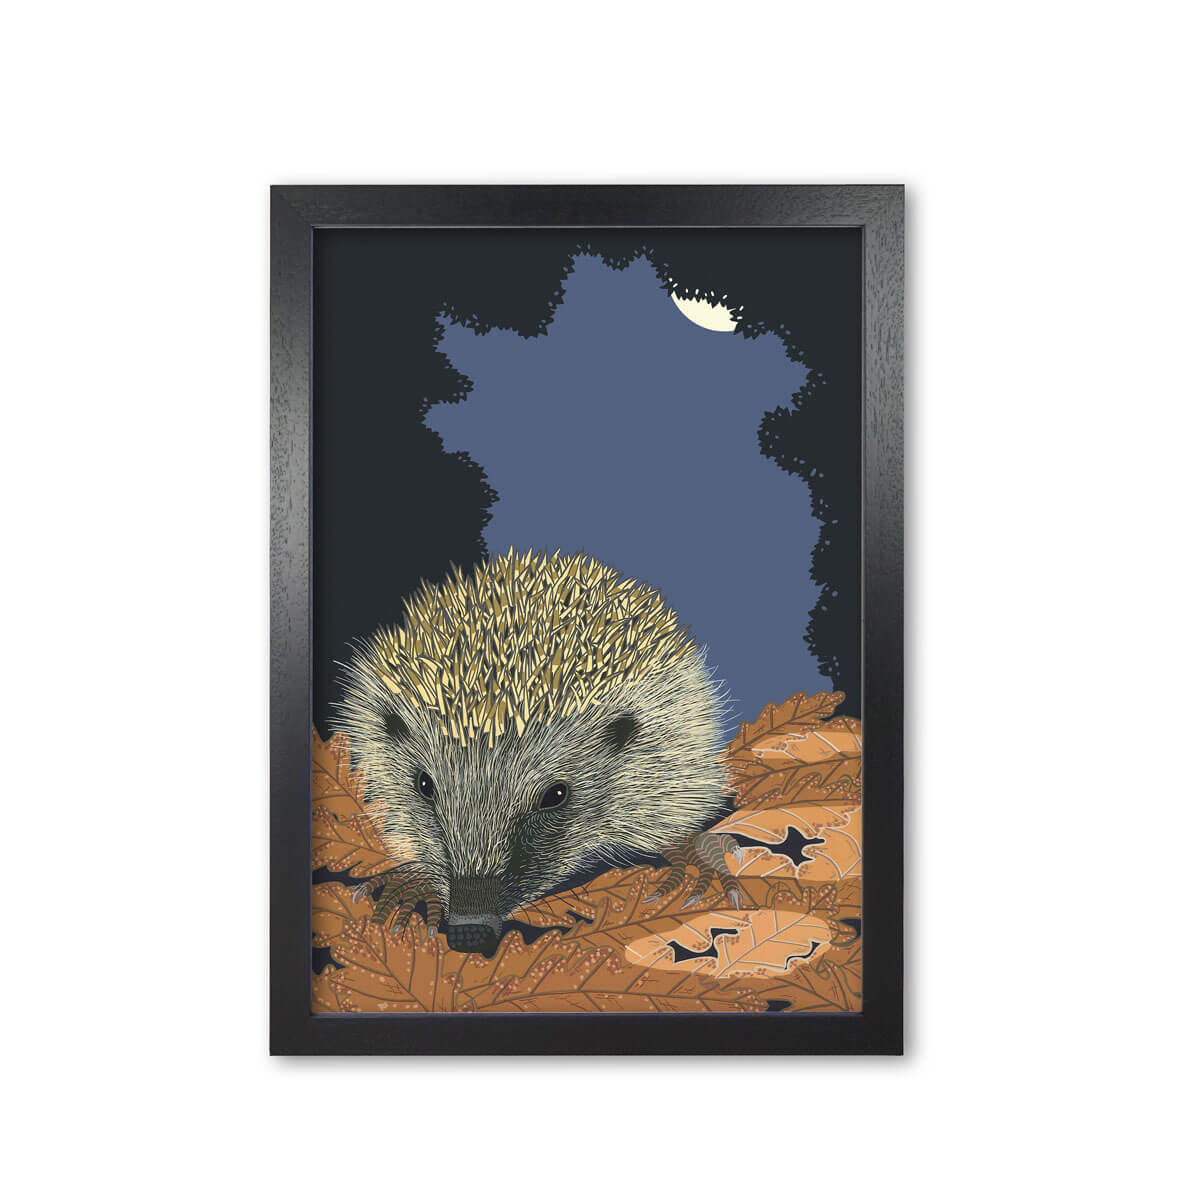 Hedgehog Art Print Mounted And Framed By Bird The Artist